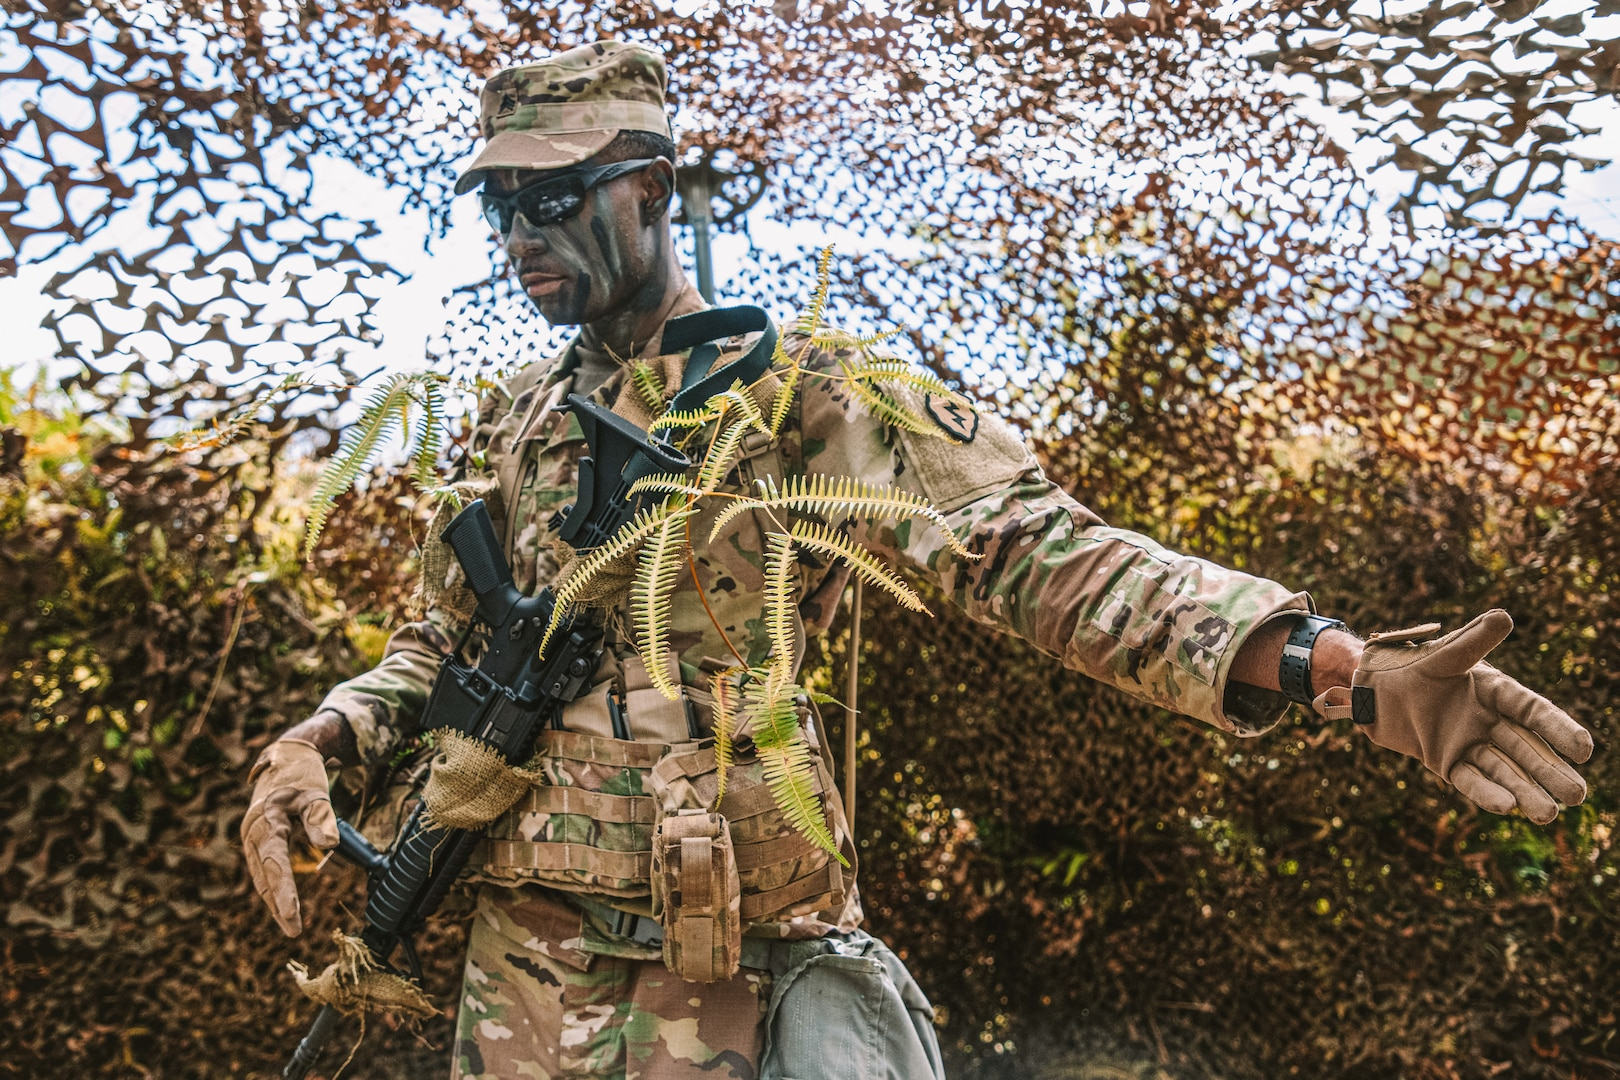 Soldier assigned to 209th Aviation Support Battalion, 25th Combat Aviation Brigade, 25th Infantry Division, uses hand signals during 25th Infantry Division Noncommissioned Officer and Soldier of the Year competition at Schofield Barracks, Hawaii, June 2, 2020 (U.S. Army/Sarah D. Sangster)